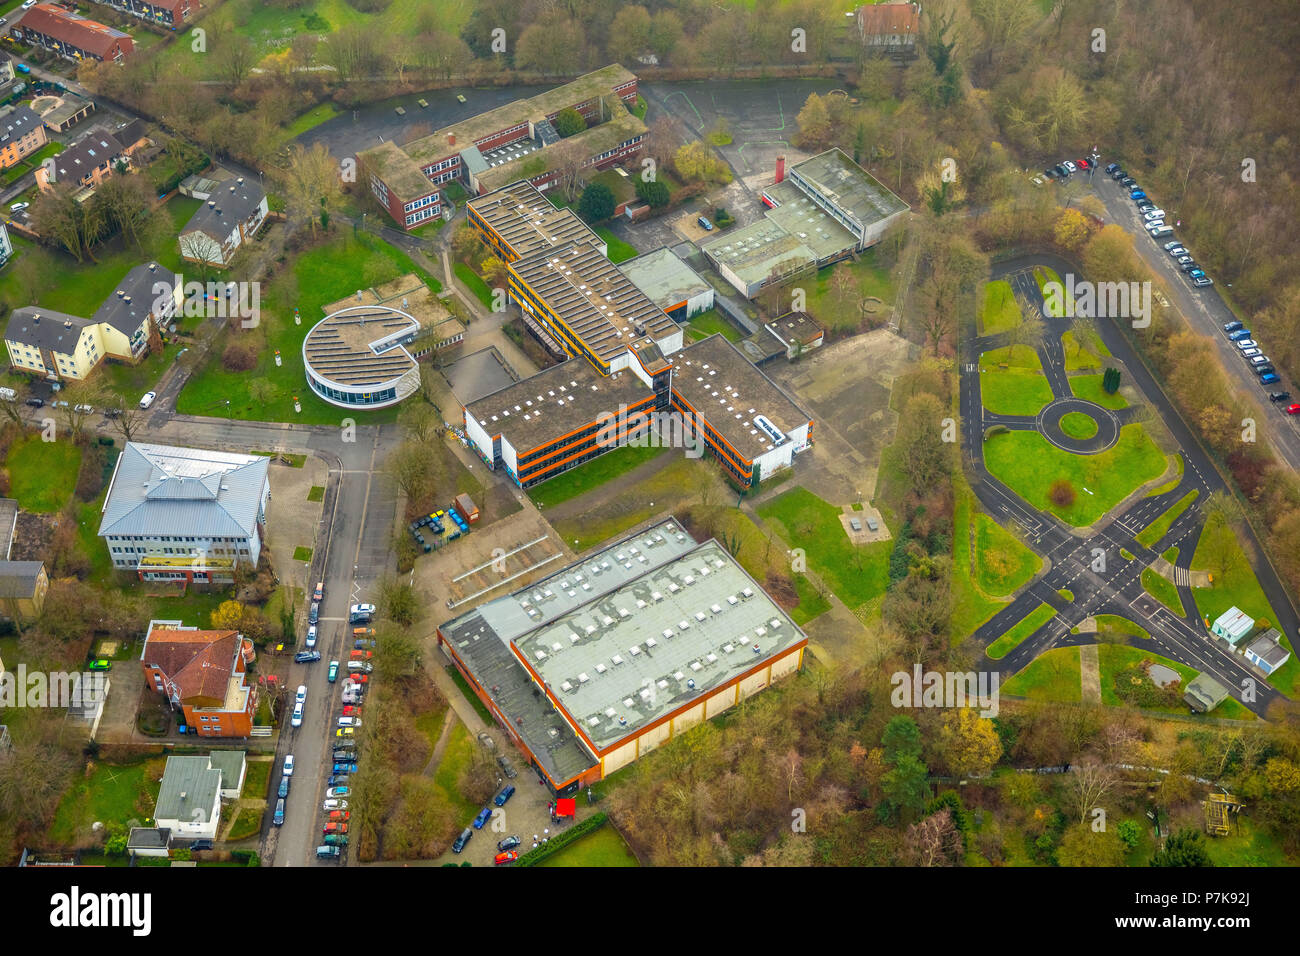 Aerial photos of the Käthe Kollwitz Comprehensive School in Lünen in the district of Gahmen. At this school, a 15-year-old student stabbed a 14-year-old classmate, Lünen, Ruhrgebiet, North Rhine-Westphalia, Germany - Stock Image